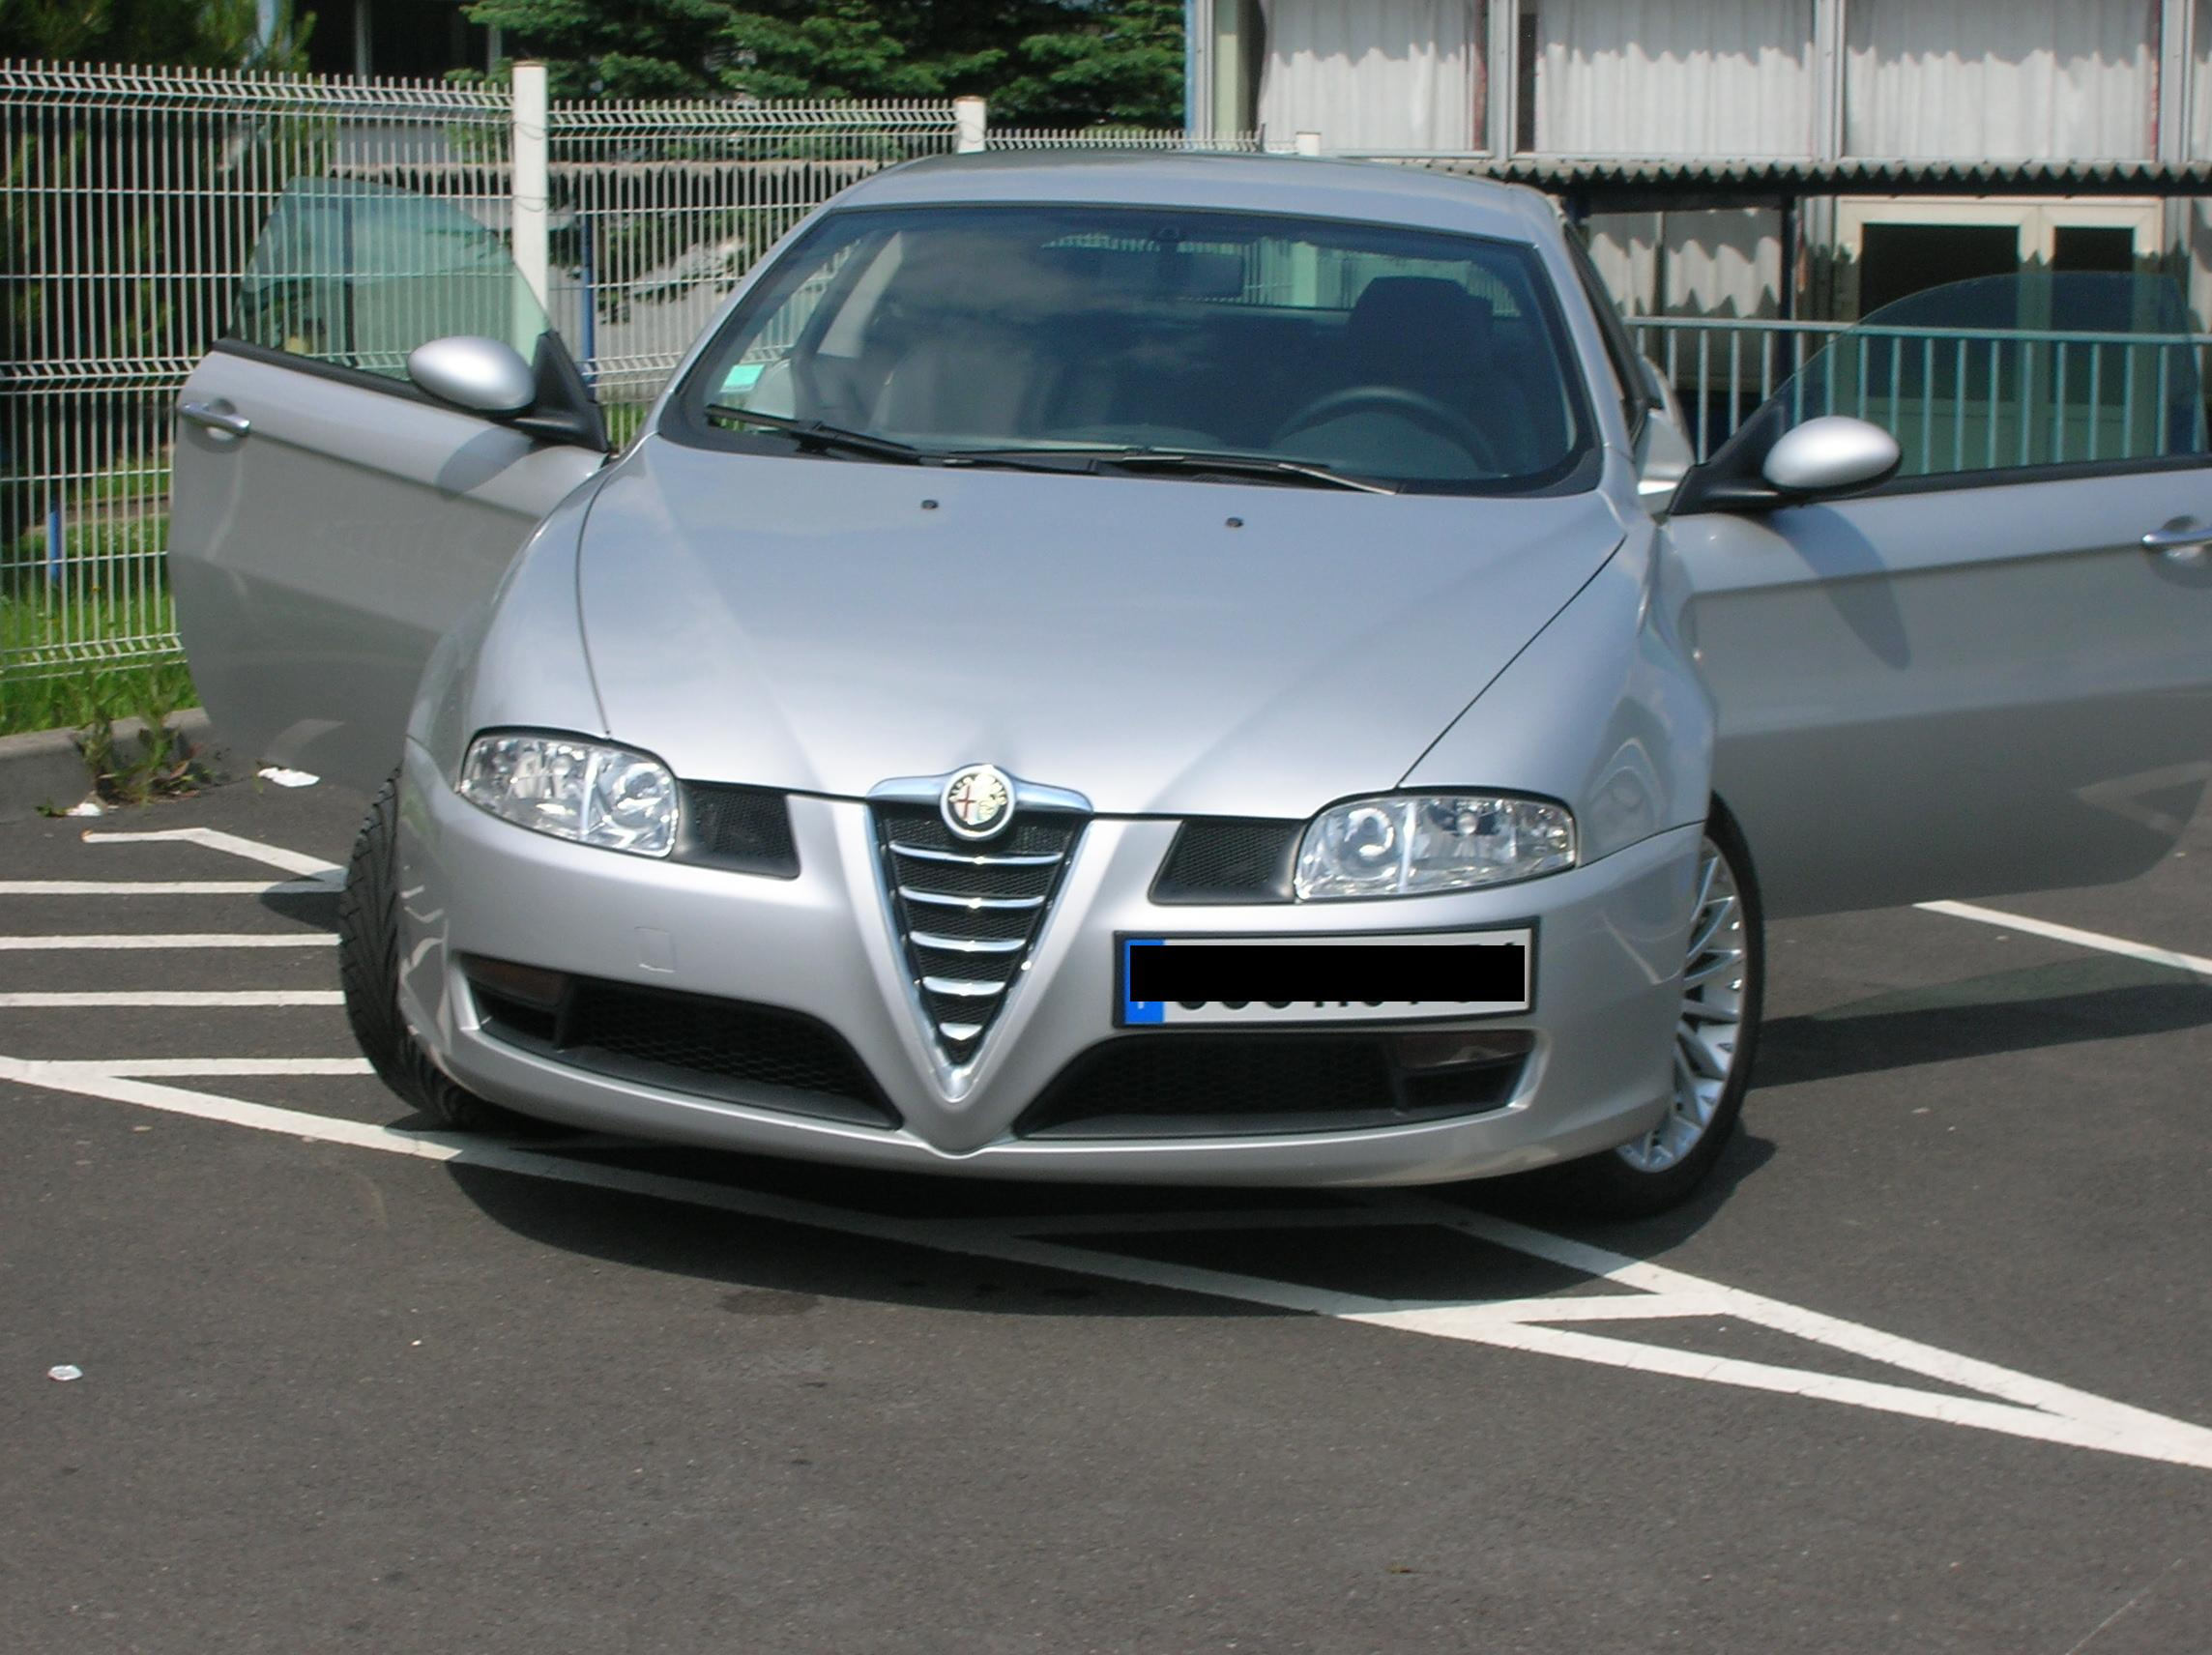 ALFA ROMEO GT 1.9 JTD Gris clair Diesel Coupe photo High Resolution Image Wallpapers Backgrounds